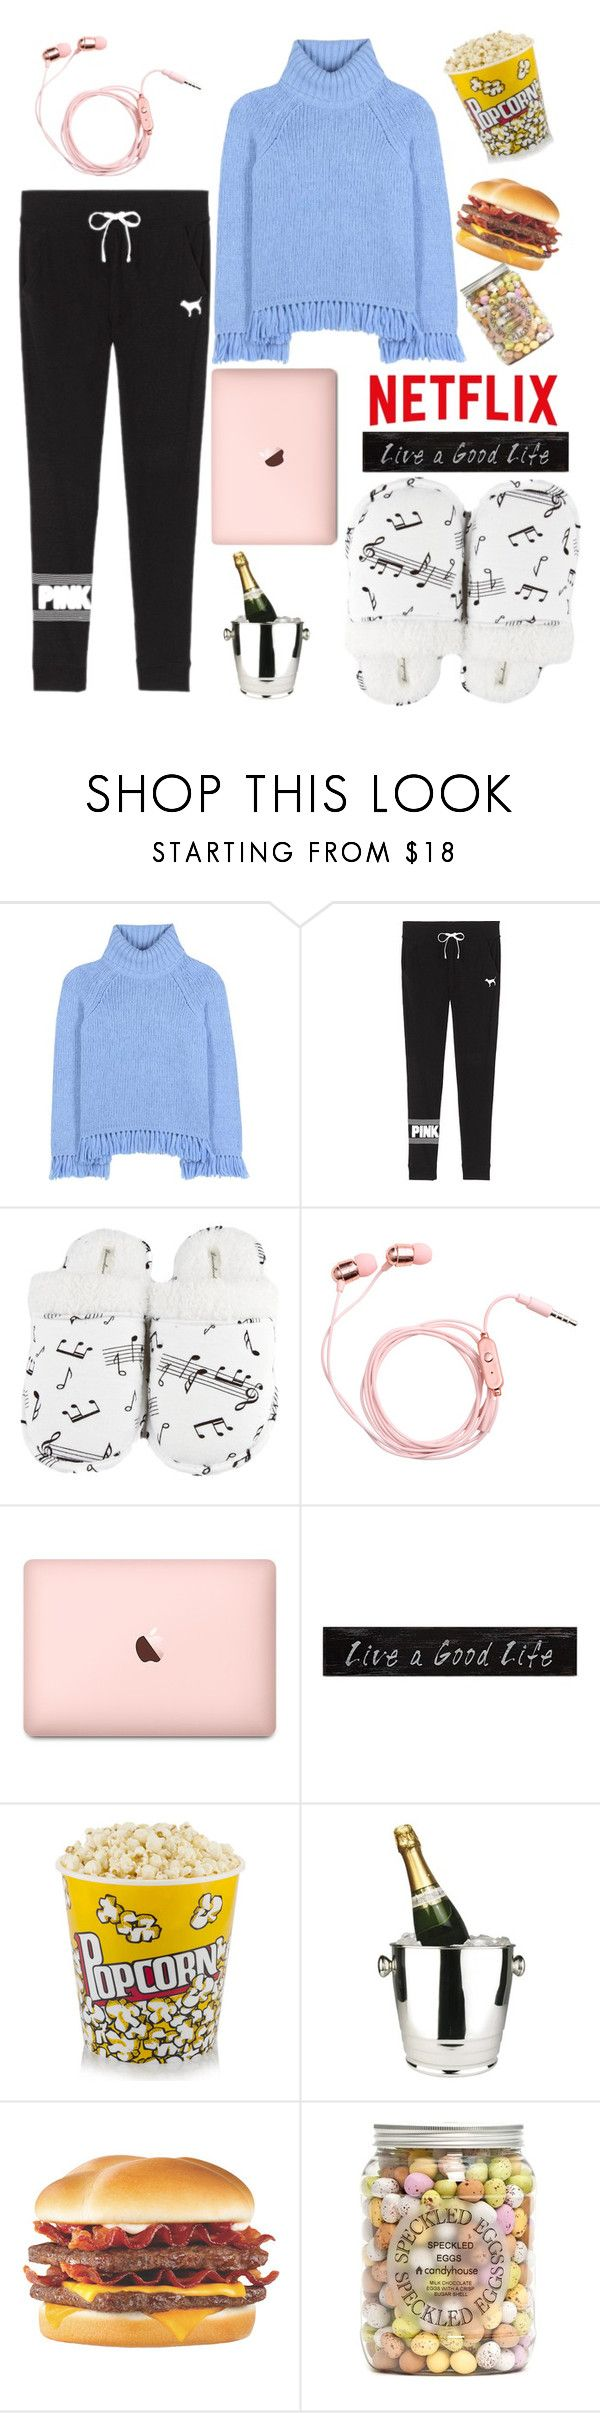 """Untitled #127"" by putrinaini on Polyvore featuring Tory Burch, Victoria's Secret, Leisureland, 3R Studios and Winco"